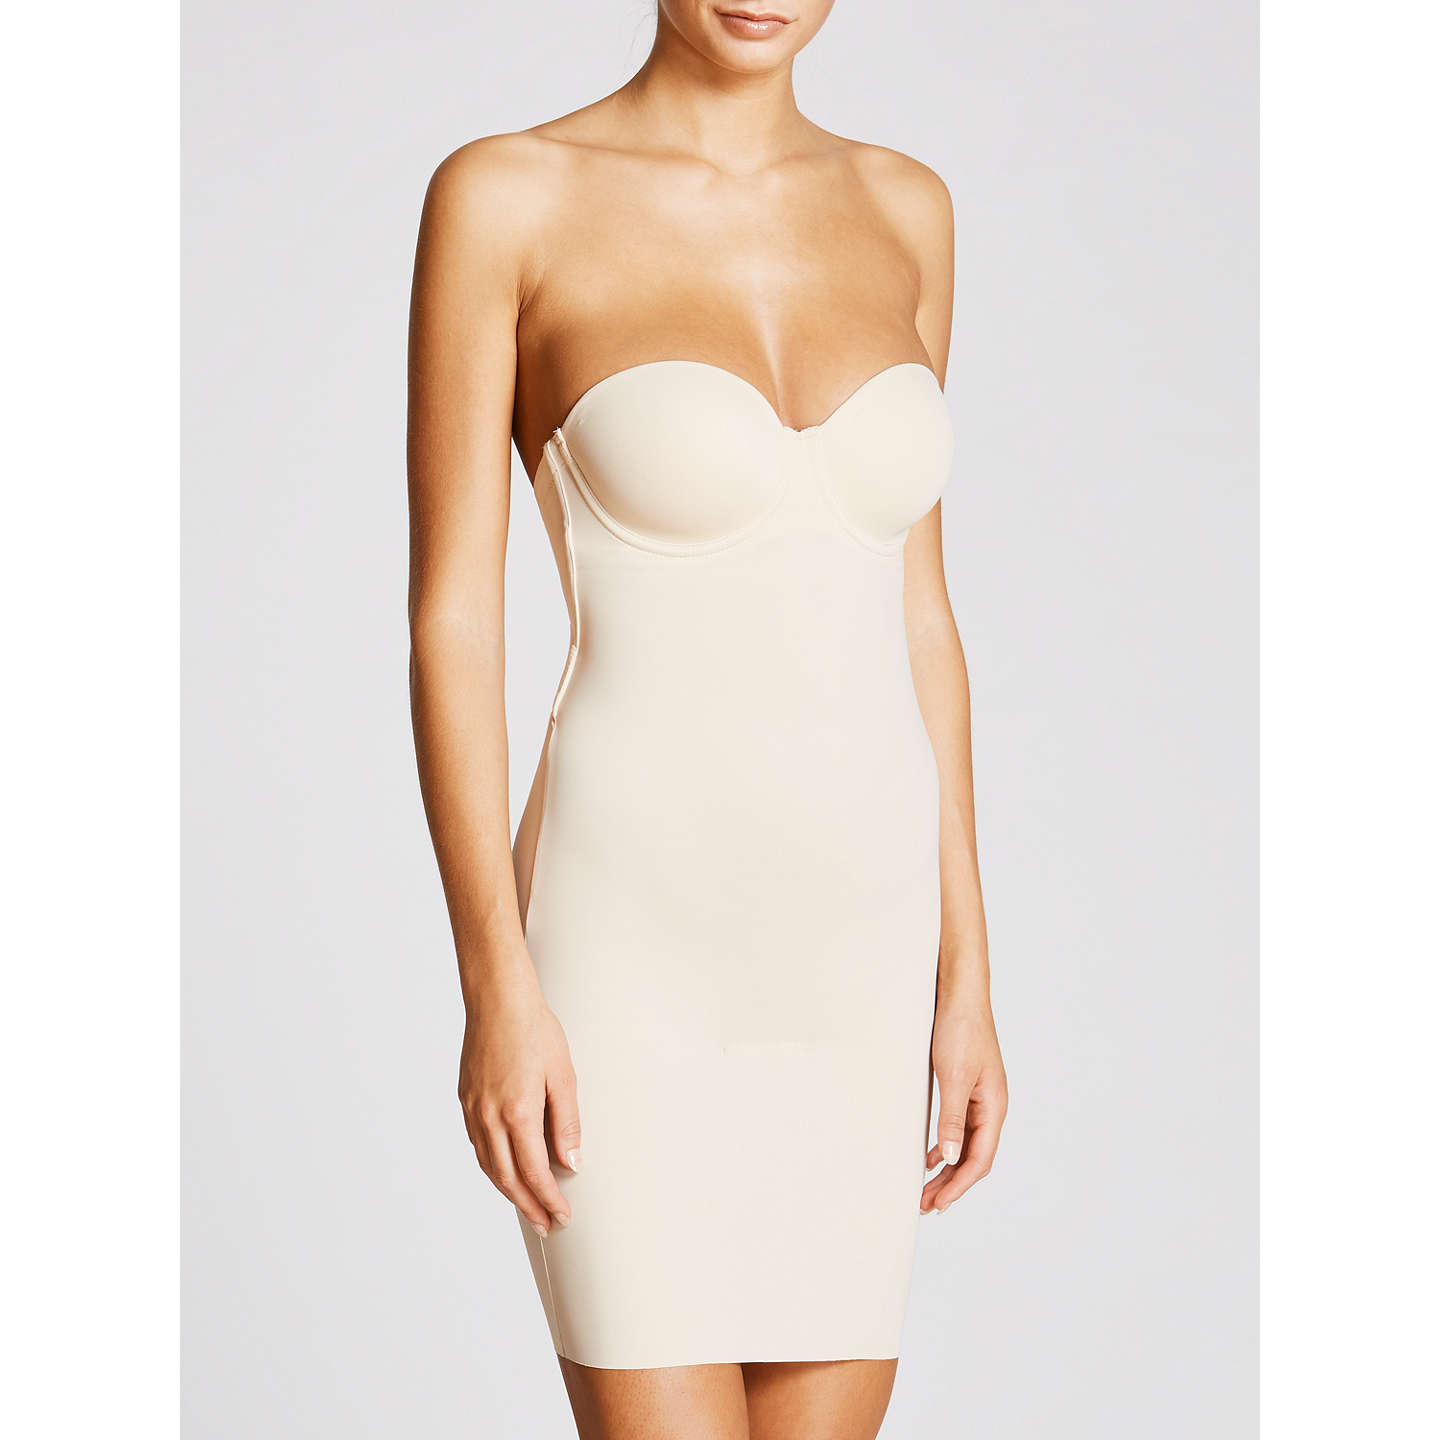 BuyMaidenform Comfort Endlessly Smooth Firm Control Slip, Latte, 34C Online at johnlewis.com